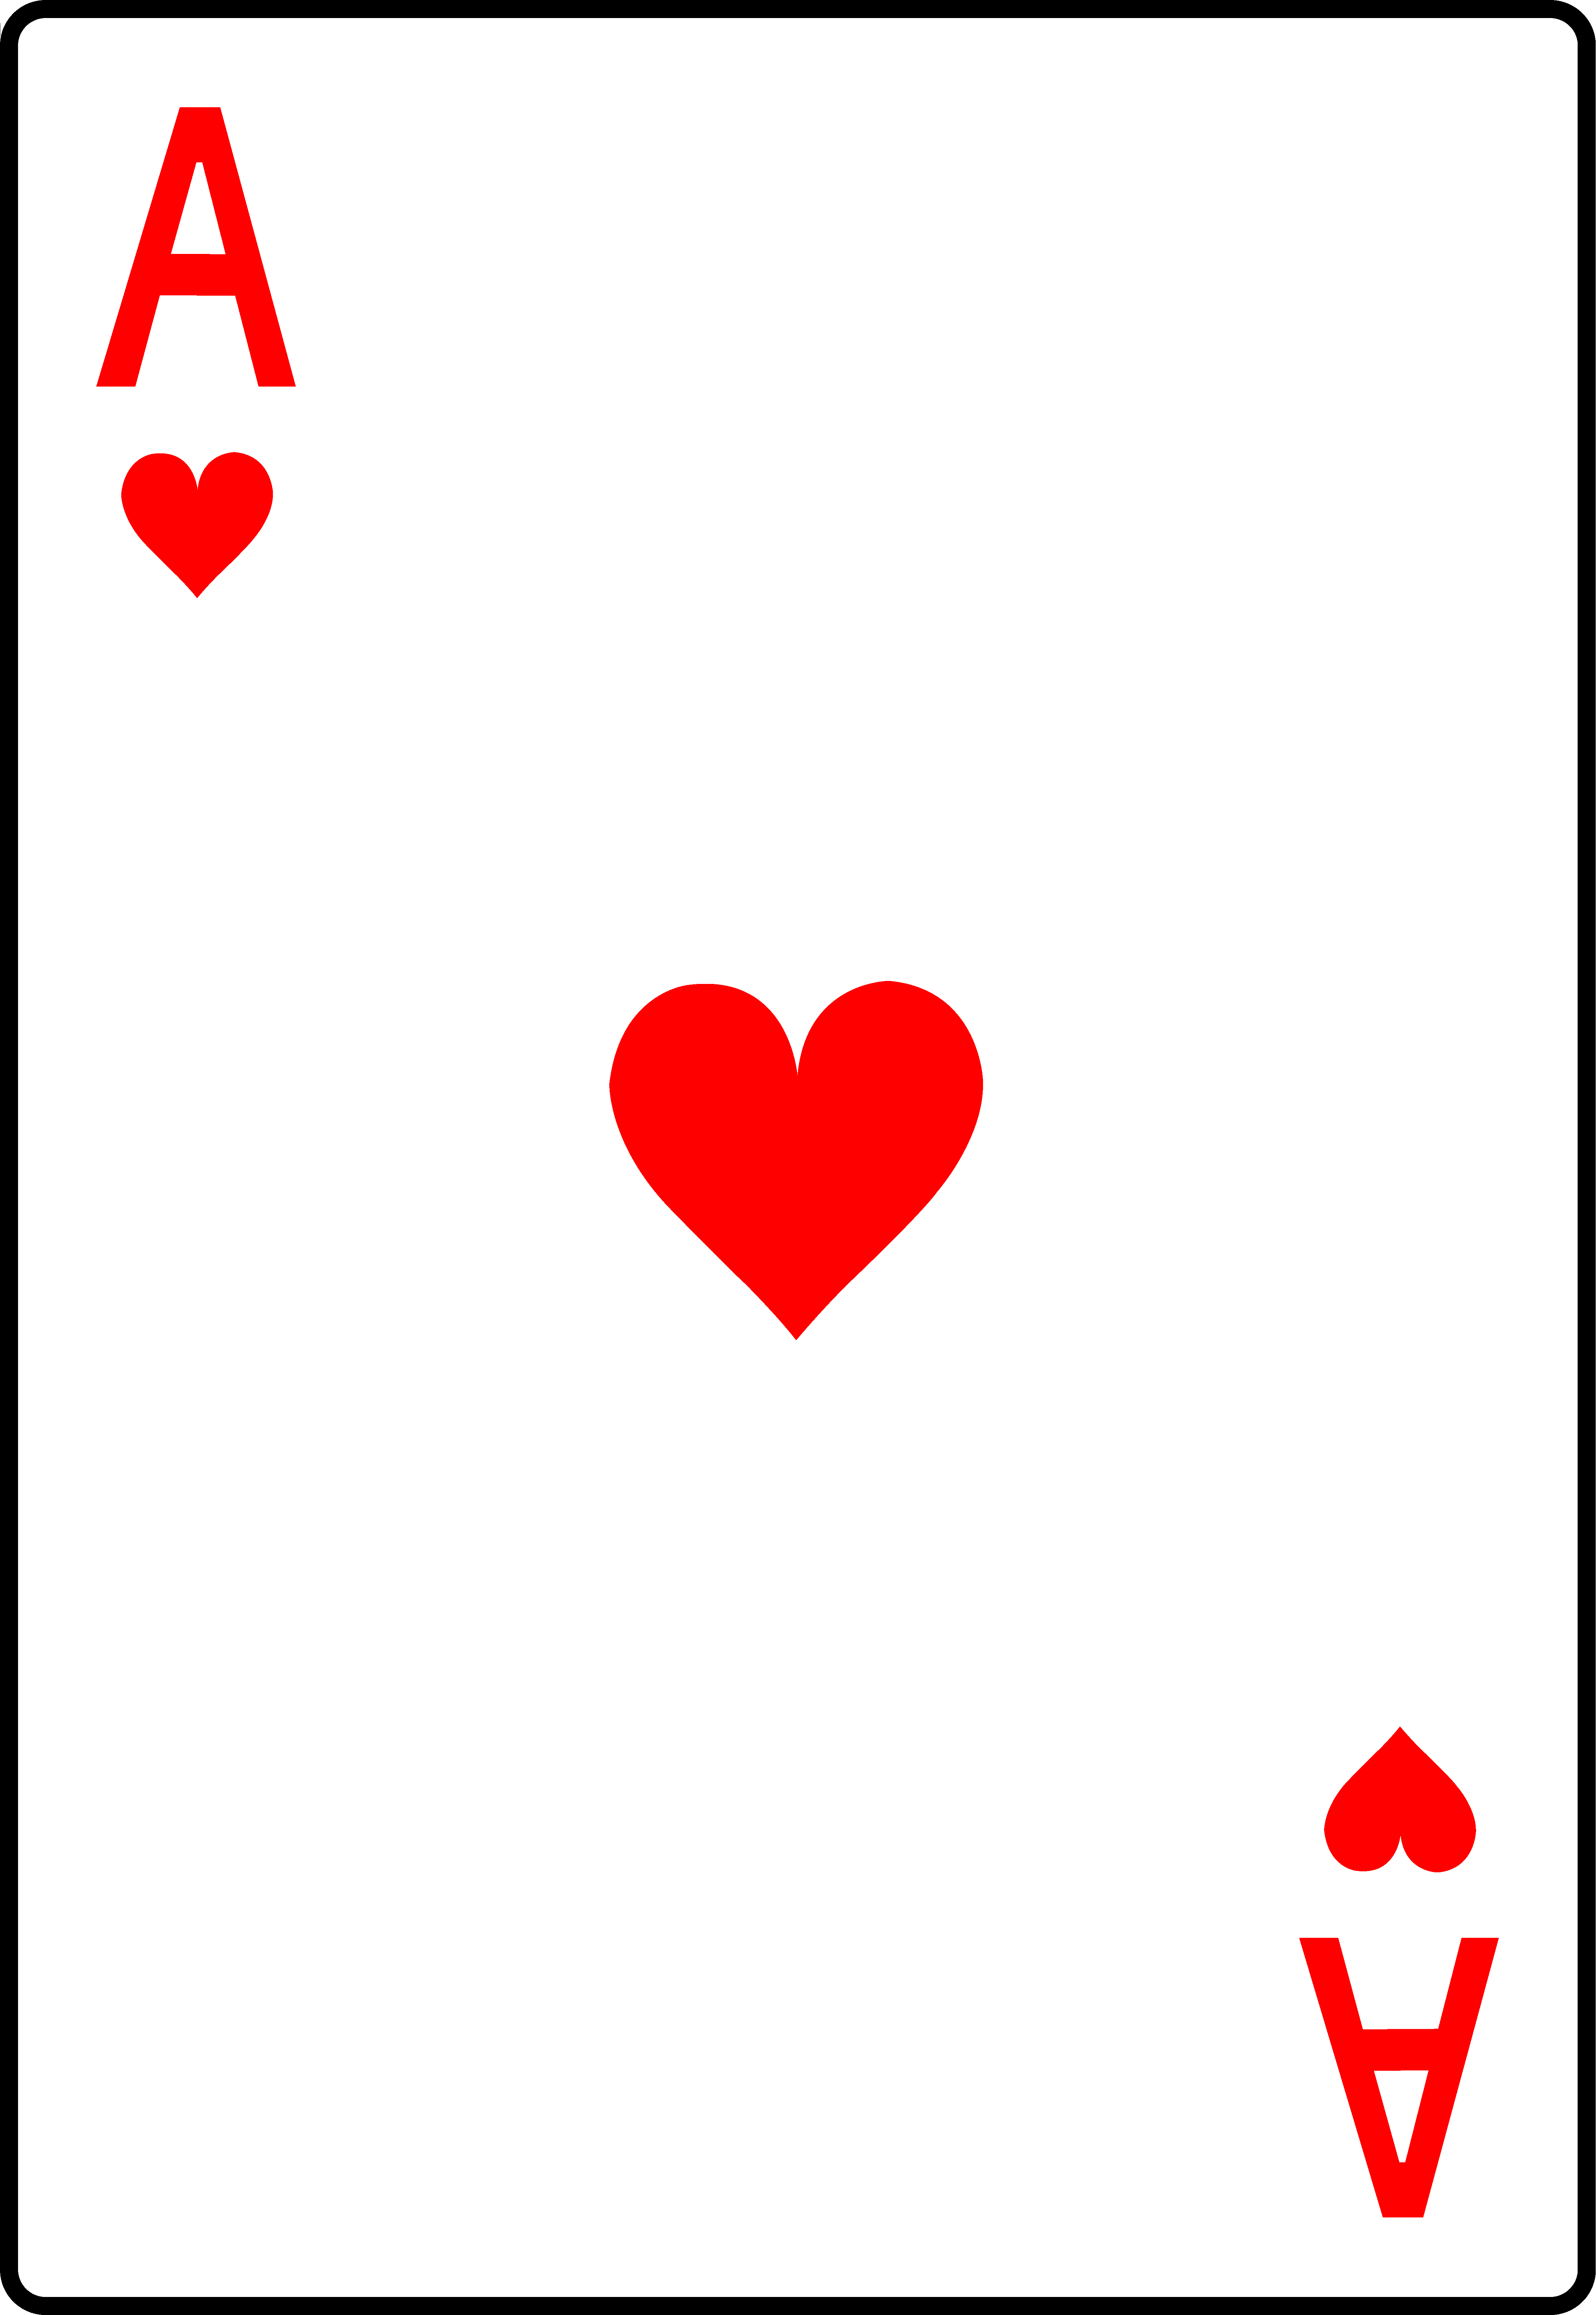 Playing card clipart free jpg freeuse Ace of Hearts Playing Card - Free Clip Art jpg freeuse